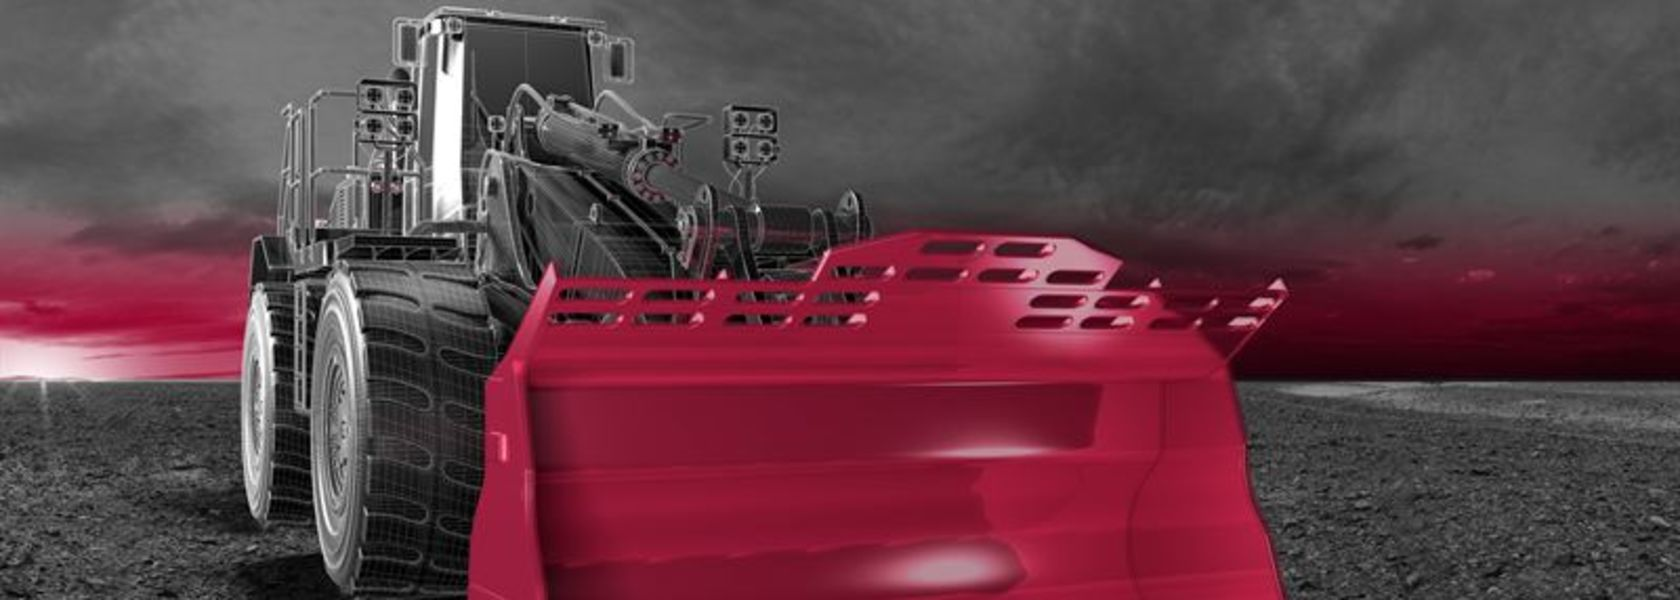 New, tough wear plate from SSAB - Mining Magazine